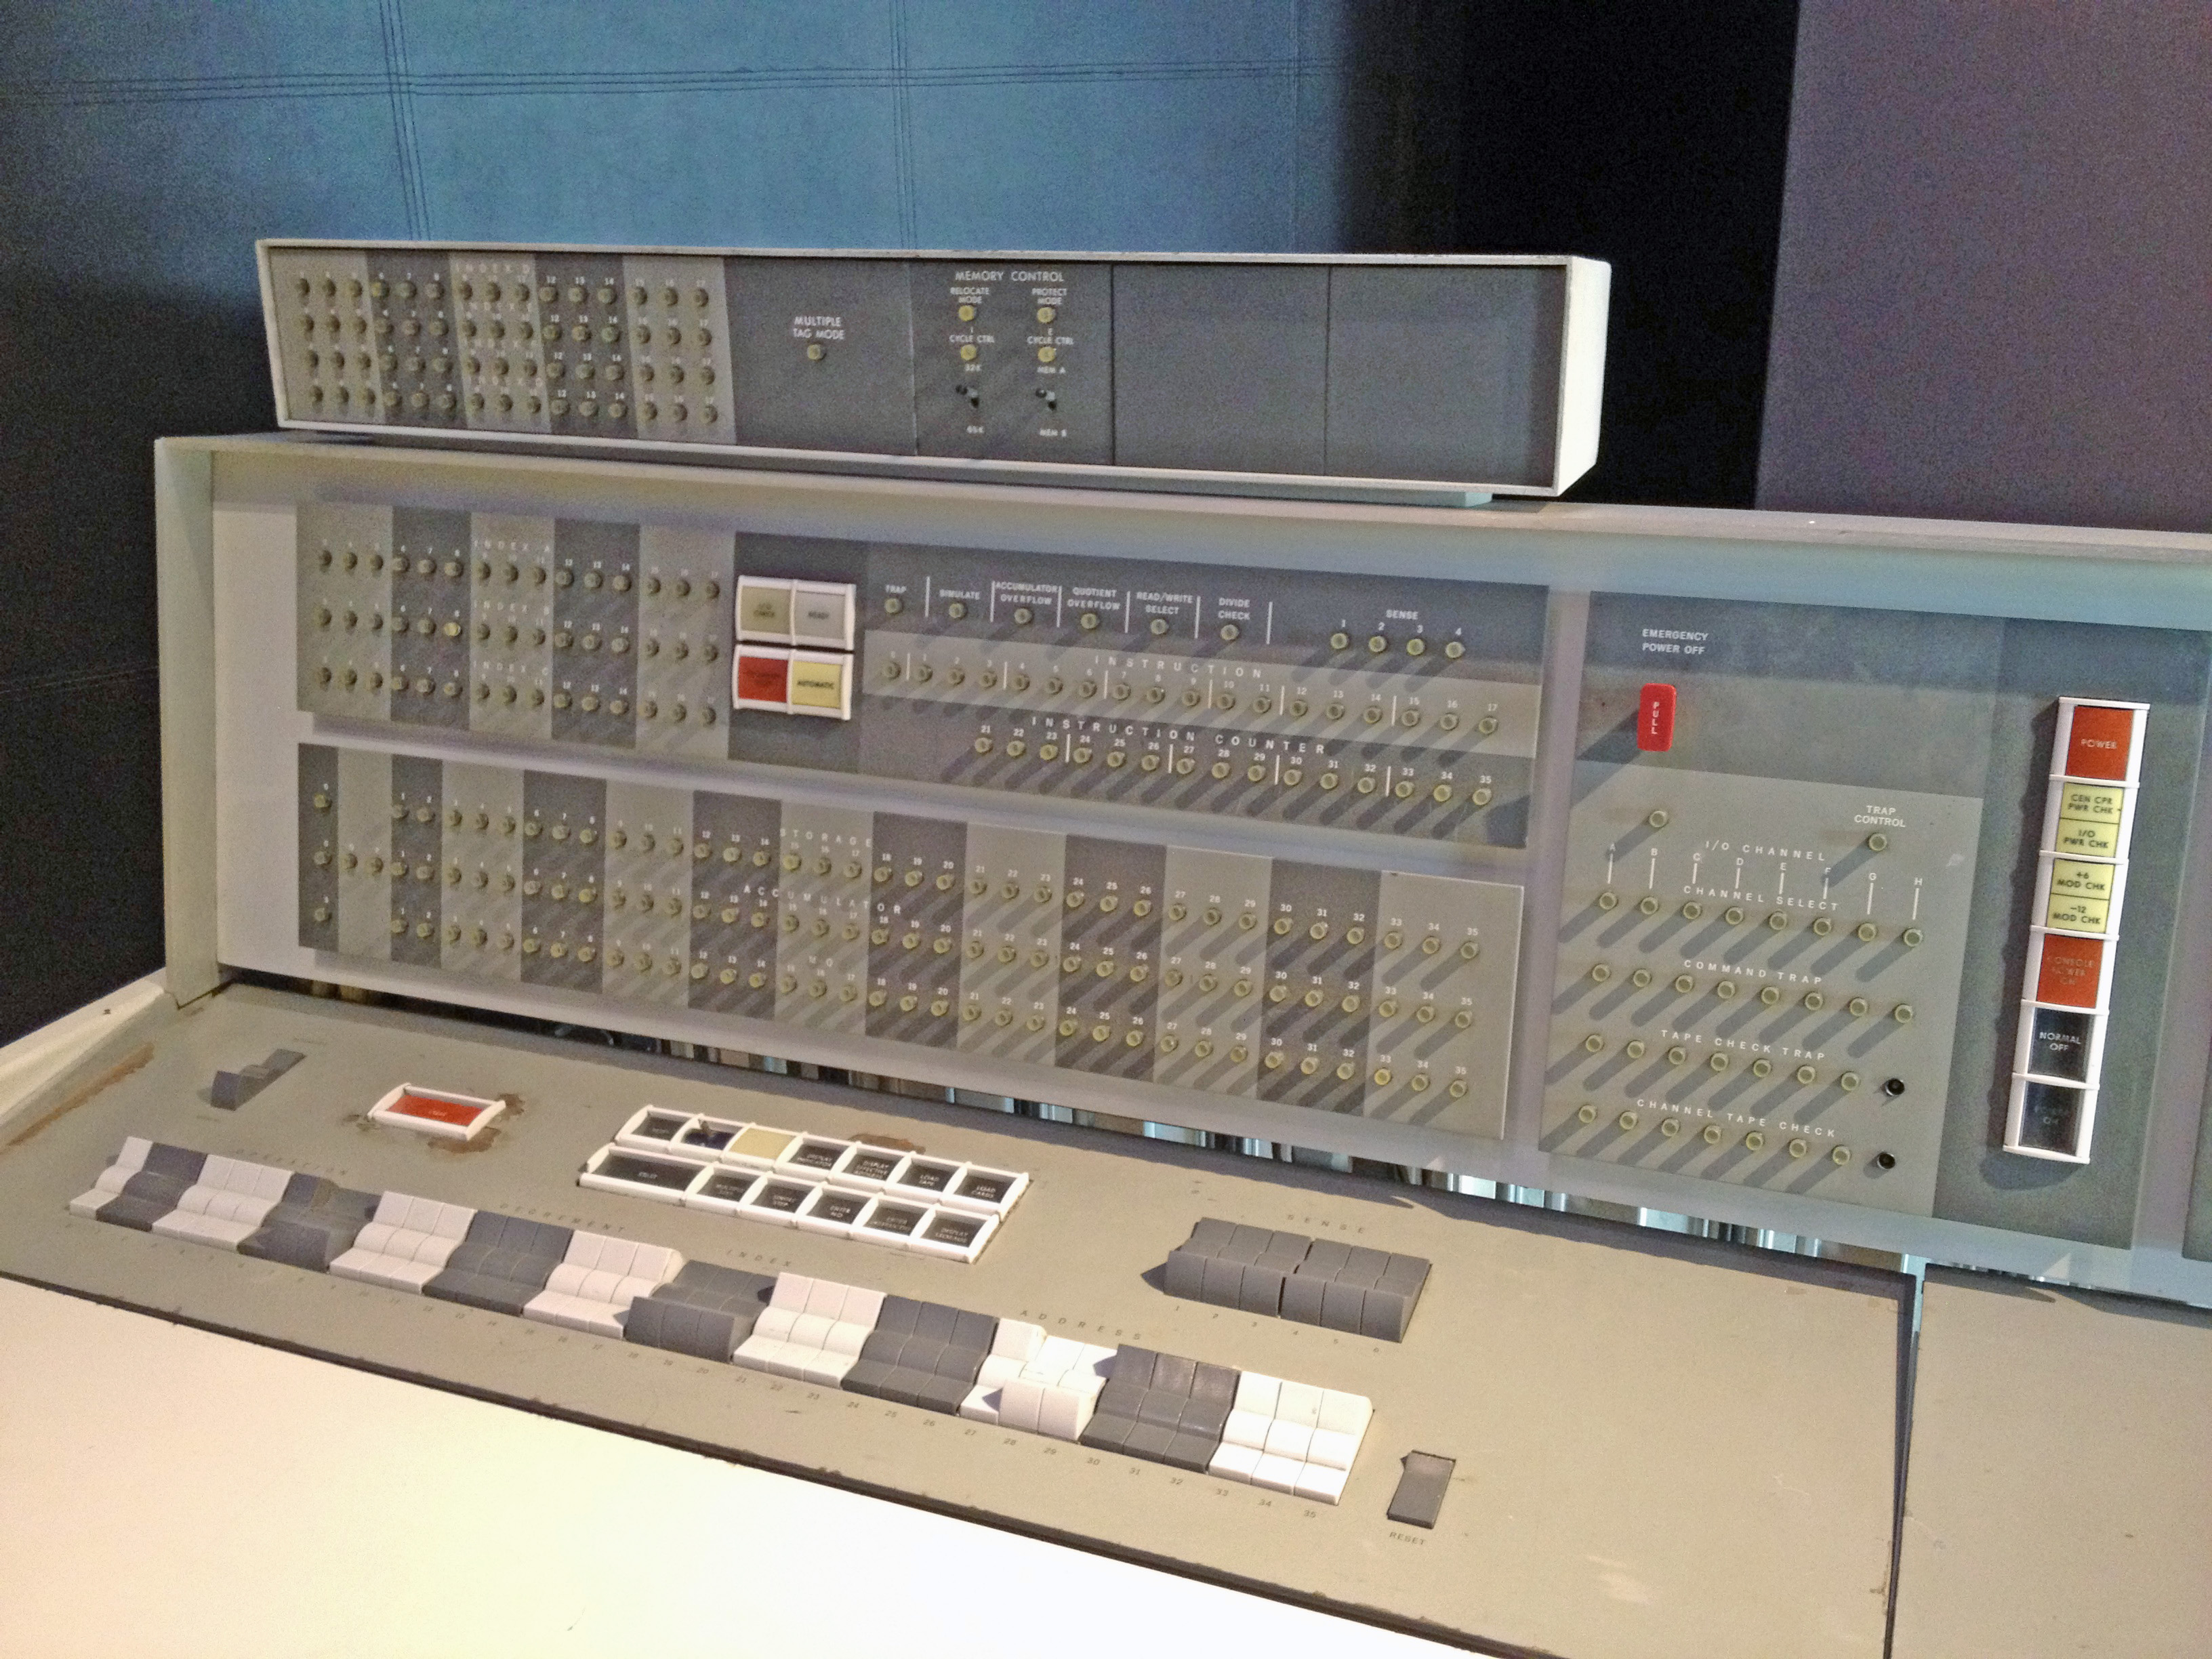 Fileibm 7094 console2rg wikimedia commons fileibm 7094 console2rg publicscrutiny Choice Image